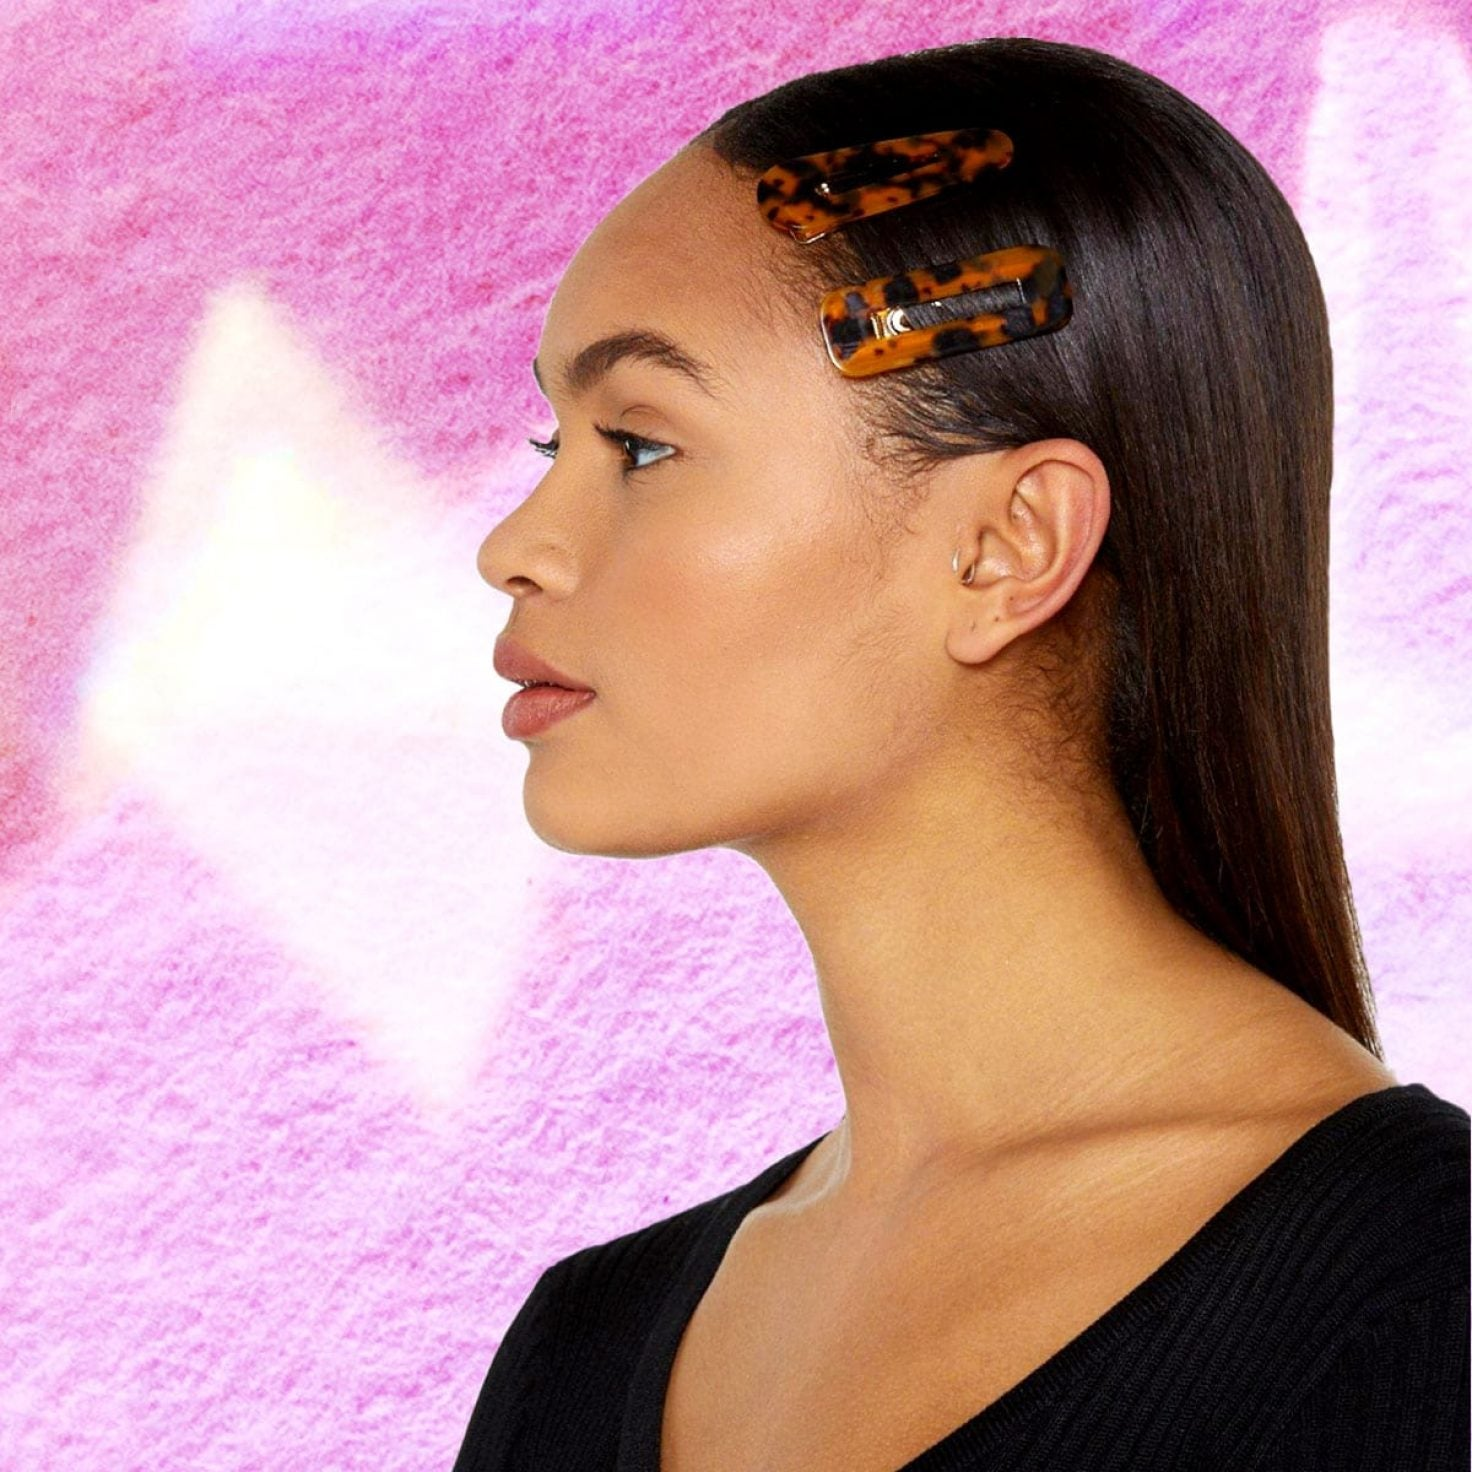 These Grown-Up Barrettes Will Add Some Playful Flair to Your Hair